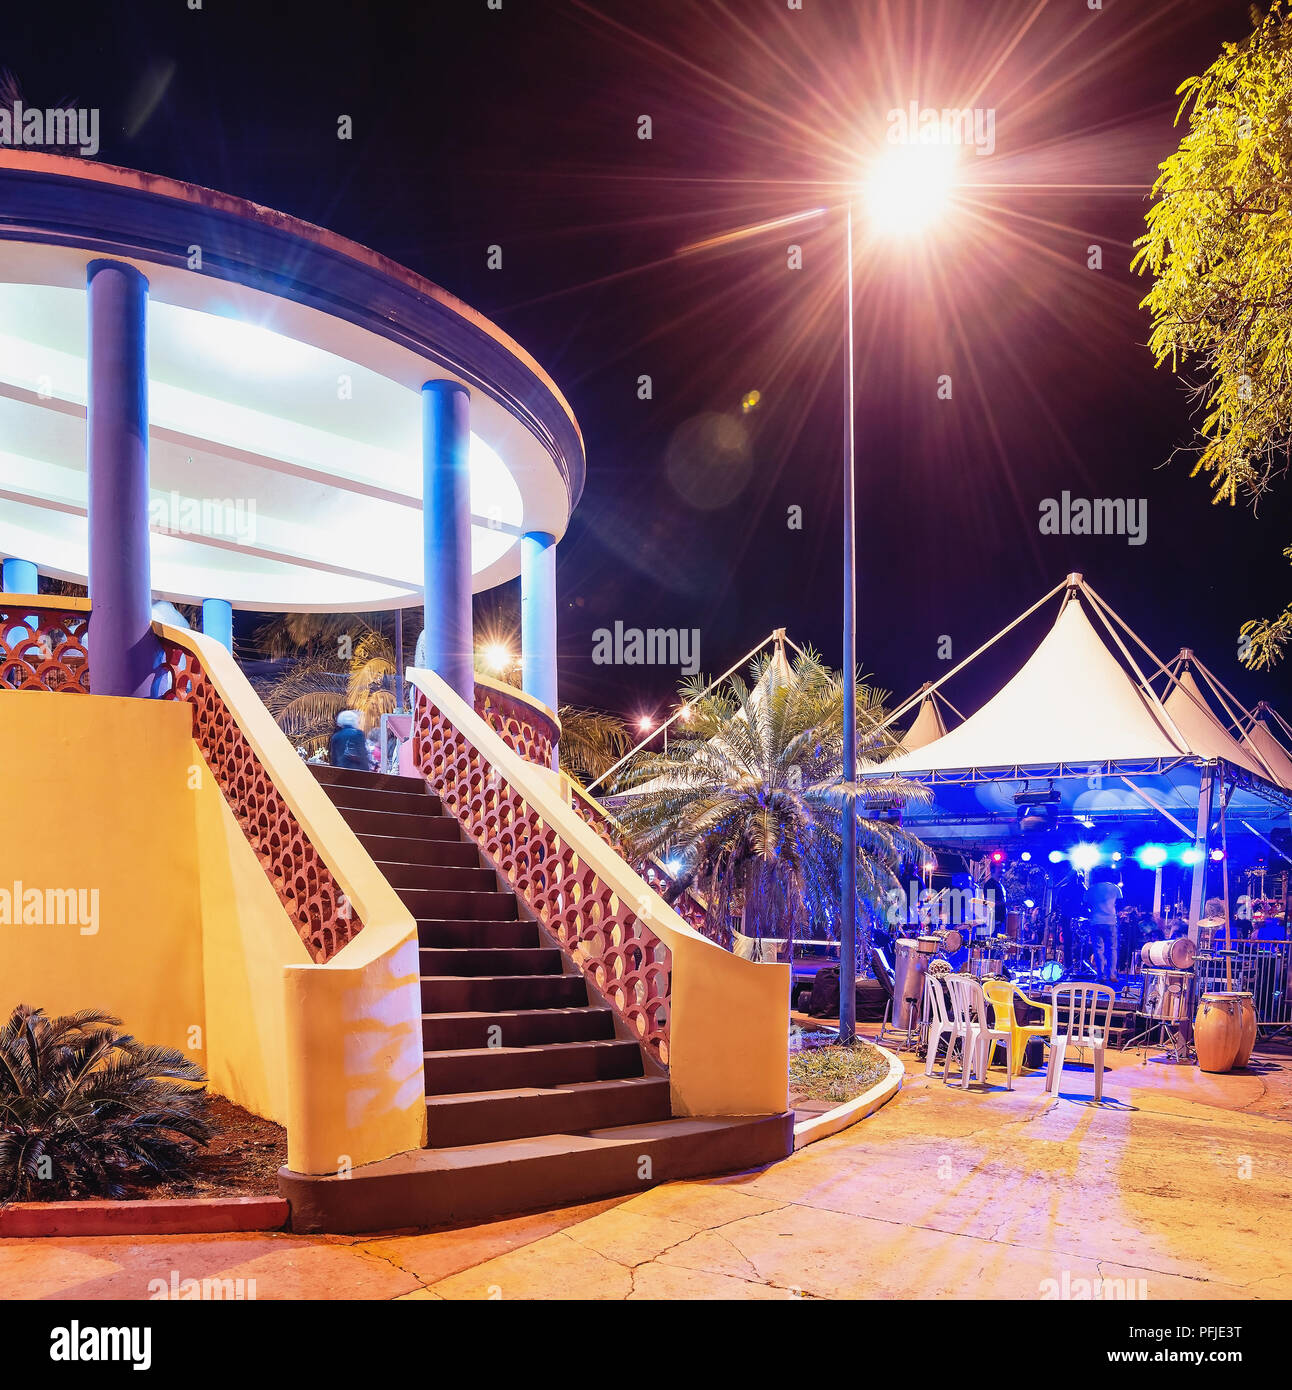 Bandstand of the city of Campo Grande - MS, Brazil. Known as Coreto da Praca Cuiaba. Stock Photo